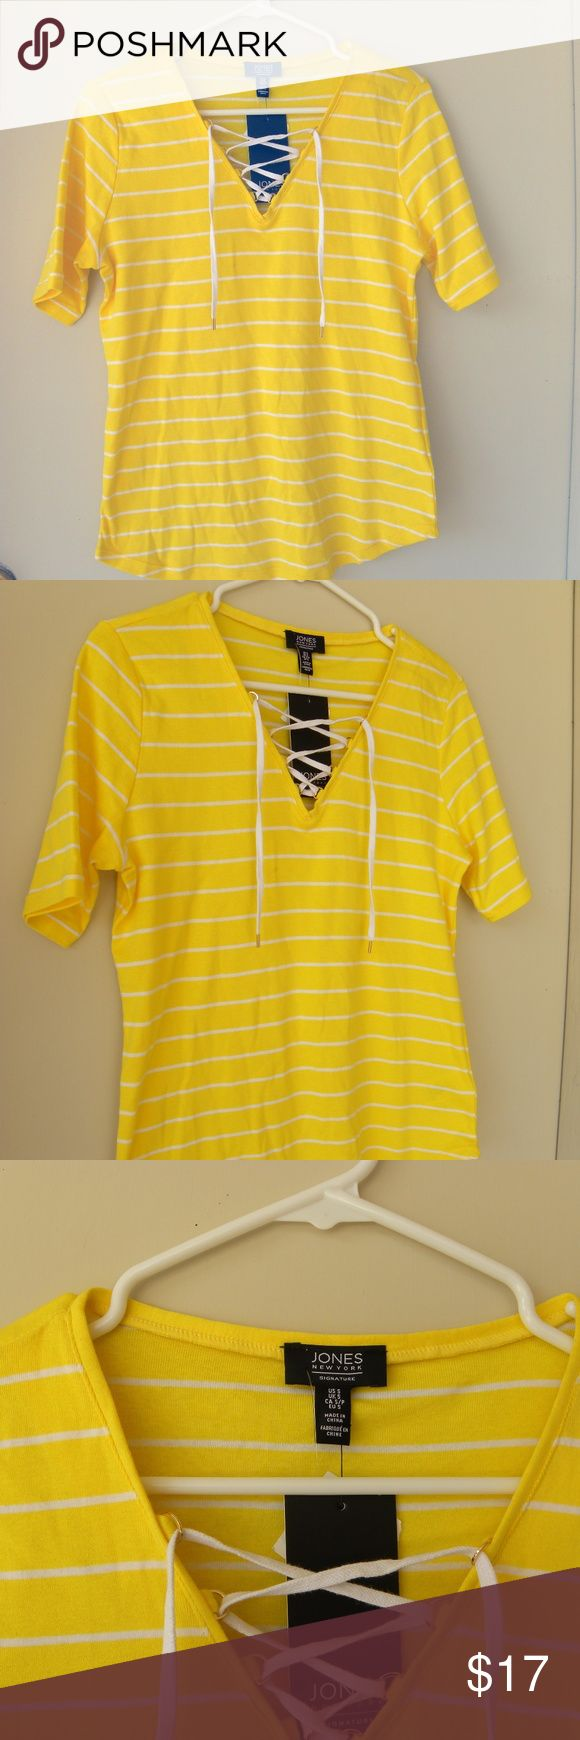 NWT JNC Jones New York Signature Yellow Blouse Tee JNC Jones New York Signature  Yellow/White  Striped  Top Blouse  Size S  Women's  Front Lace Up Accent on Neck area. (white lace) JNC Jones New York Signature Tops Tees - Short Sleeve